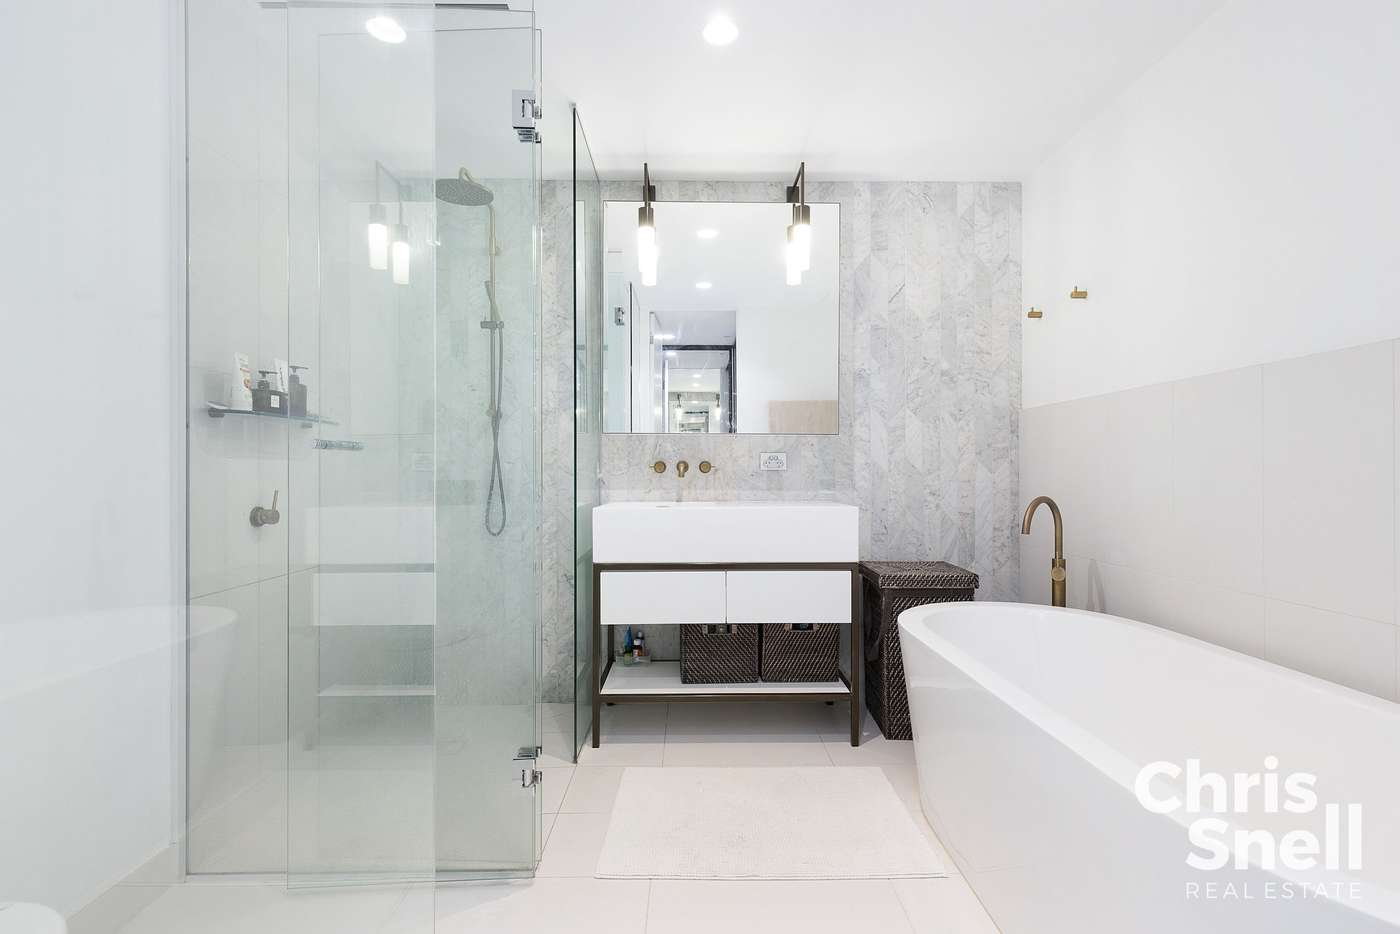 Sixth view of Homely apartment listing, 401/42 Ralston Street, South Yarra VIC 3141